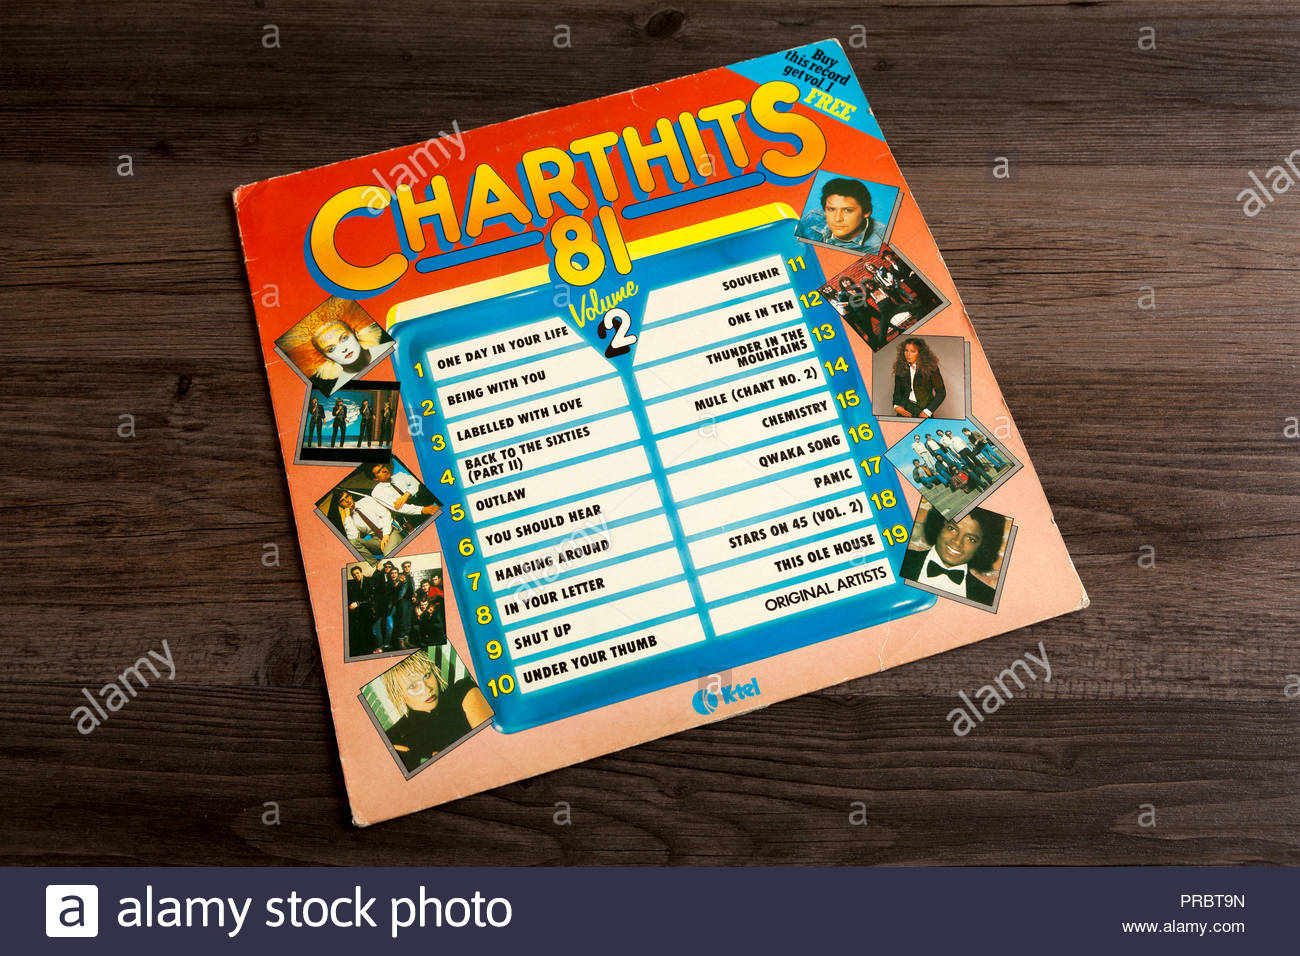 Chart Hits 81 - Compilation album cover from the 1980s - Stock Image